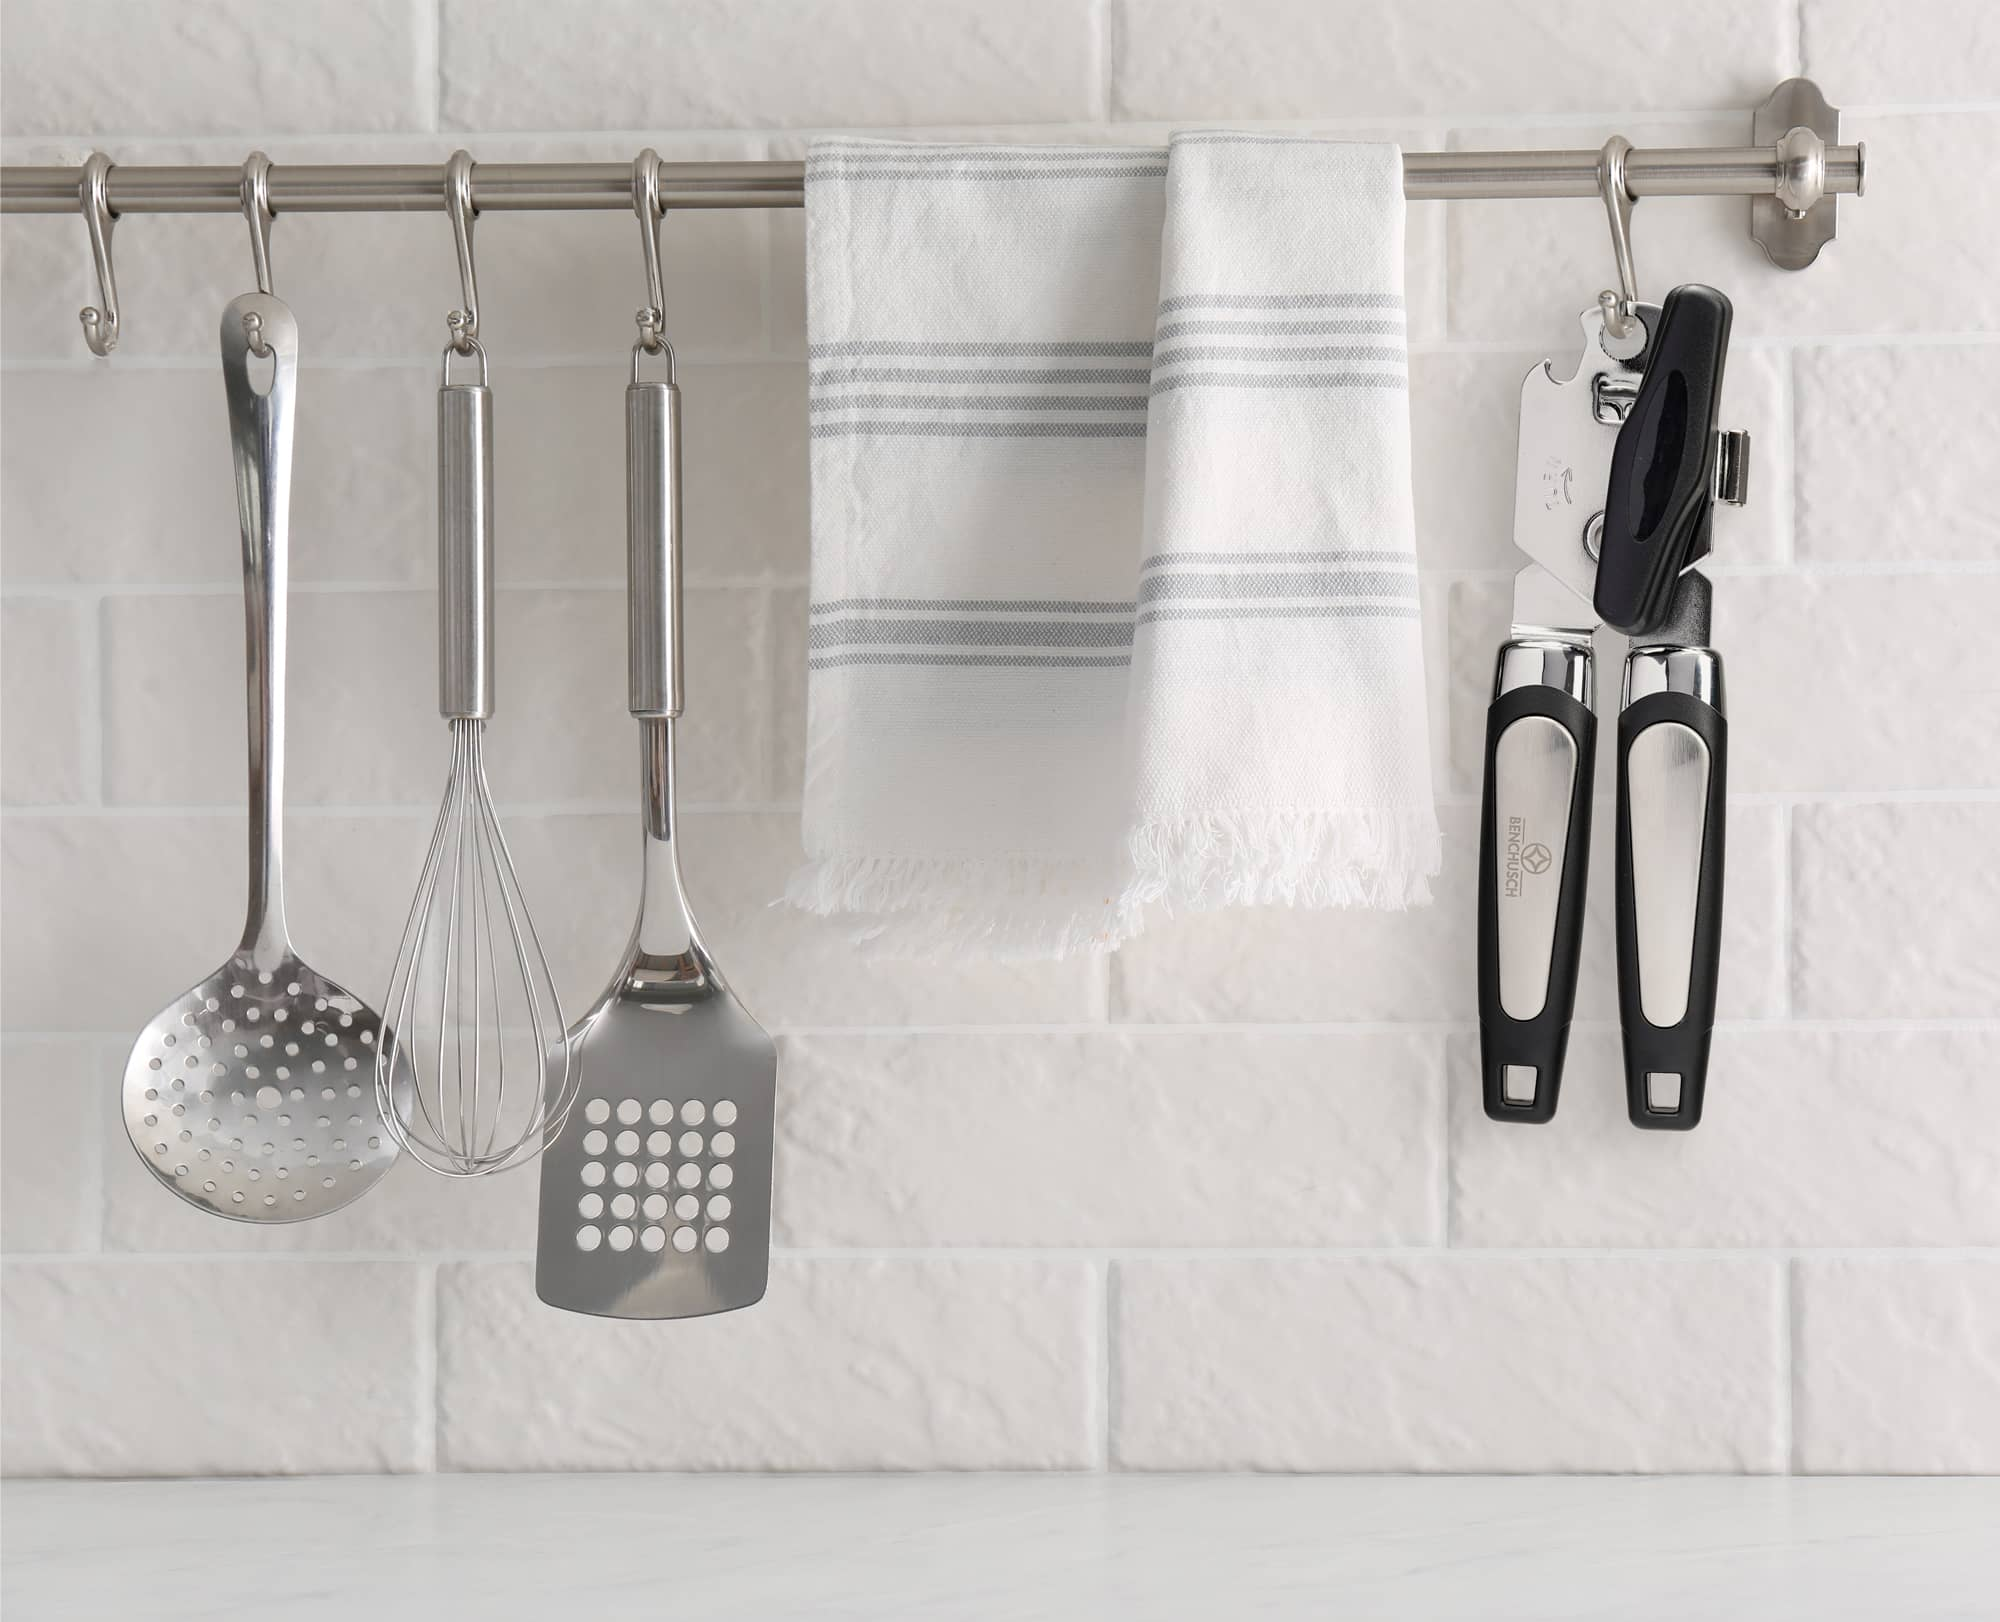 Benchusch Classia Can Opener is hung on the wall